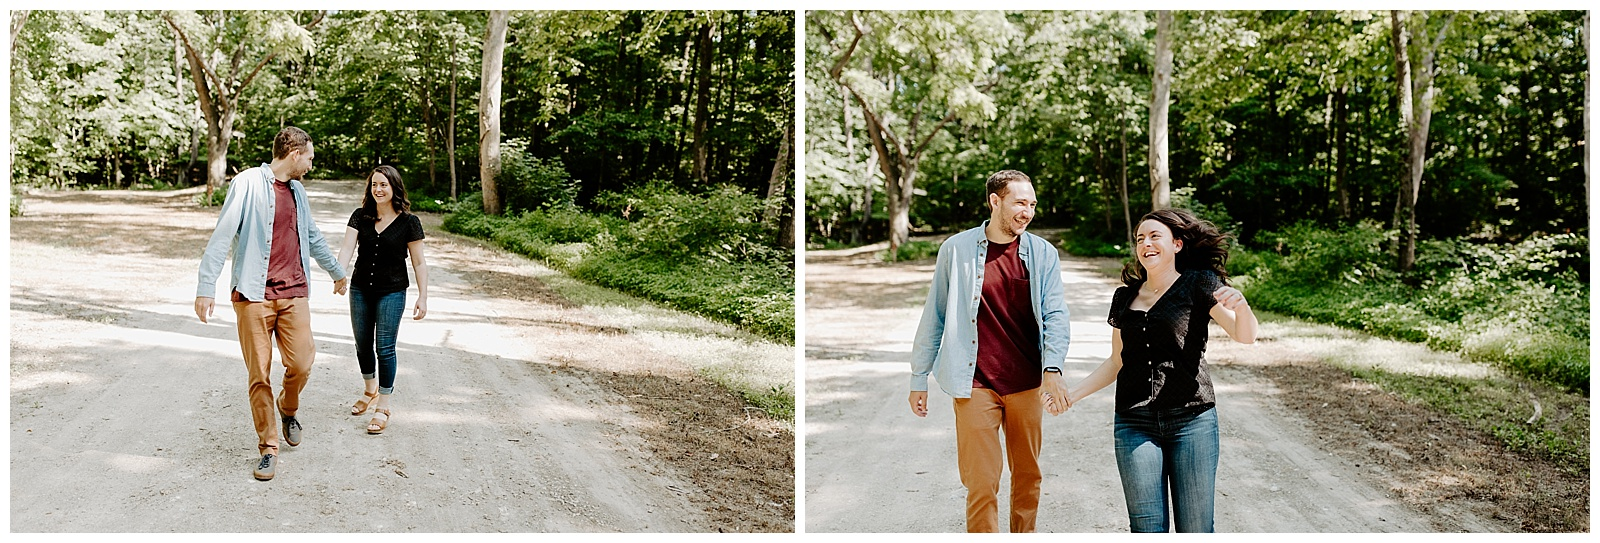 richmondindianaengagementsession-7.jpg